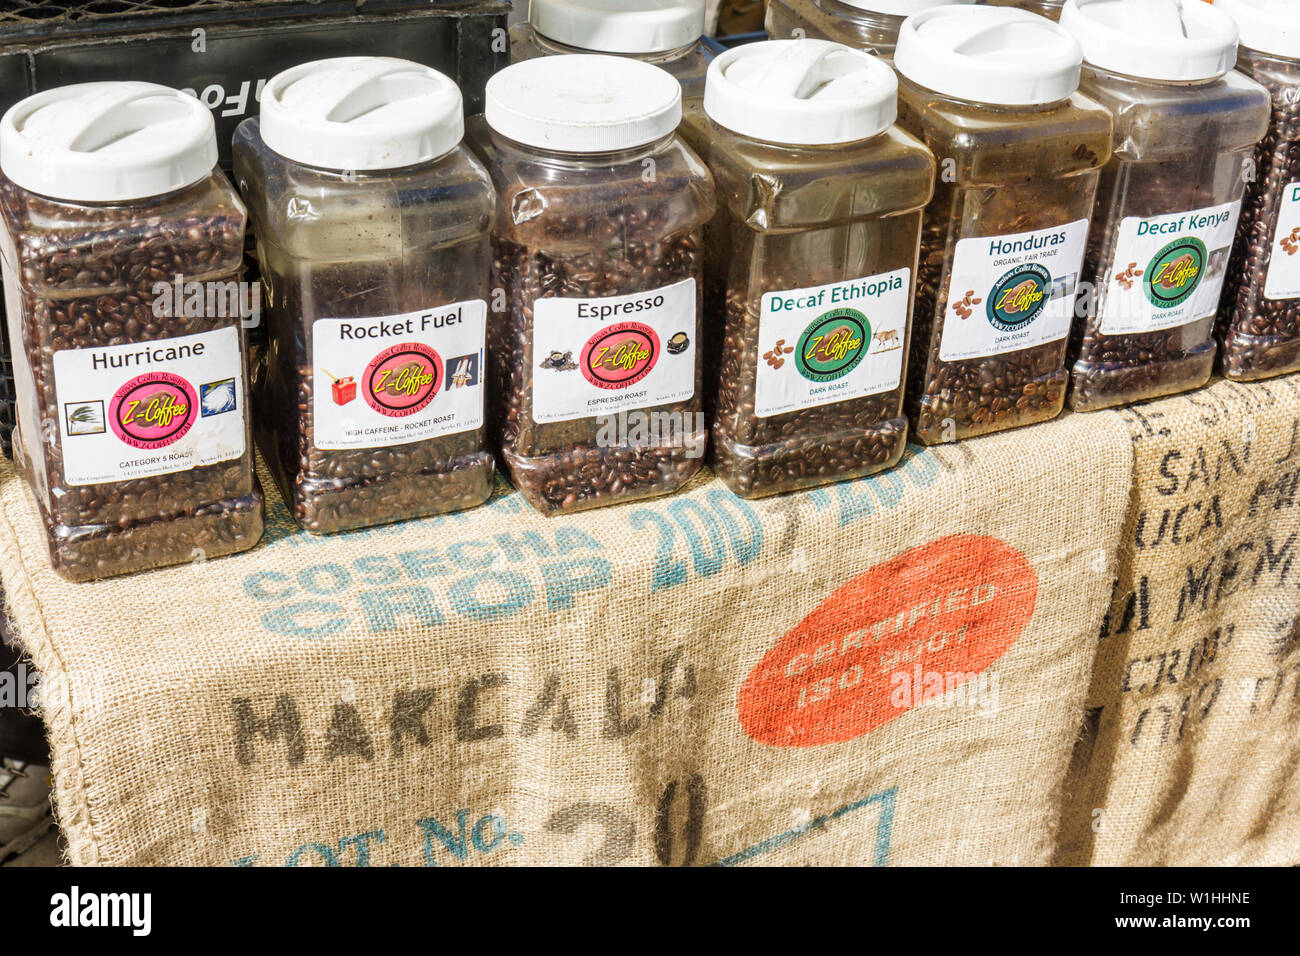 Winter Park Florida Farmer's Farmers Market shopping vendor gourmet Z-Coffee artisan roasters coffee whole beans product display - Stock Image